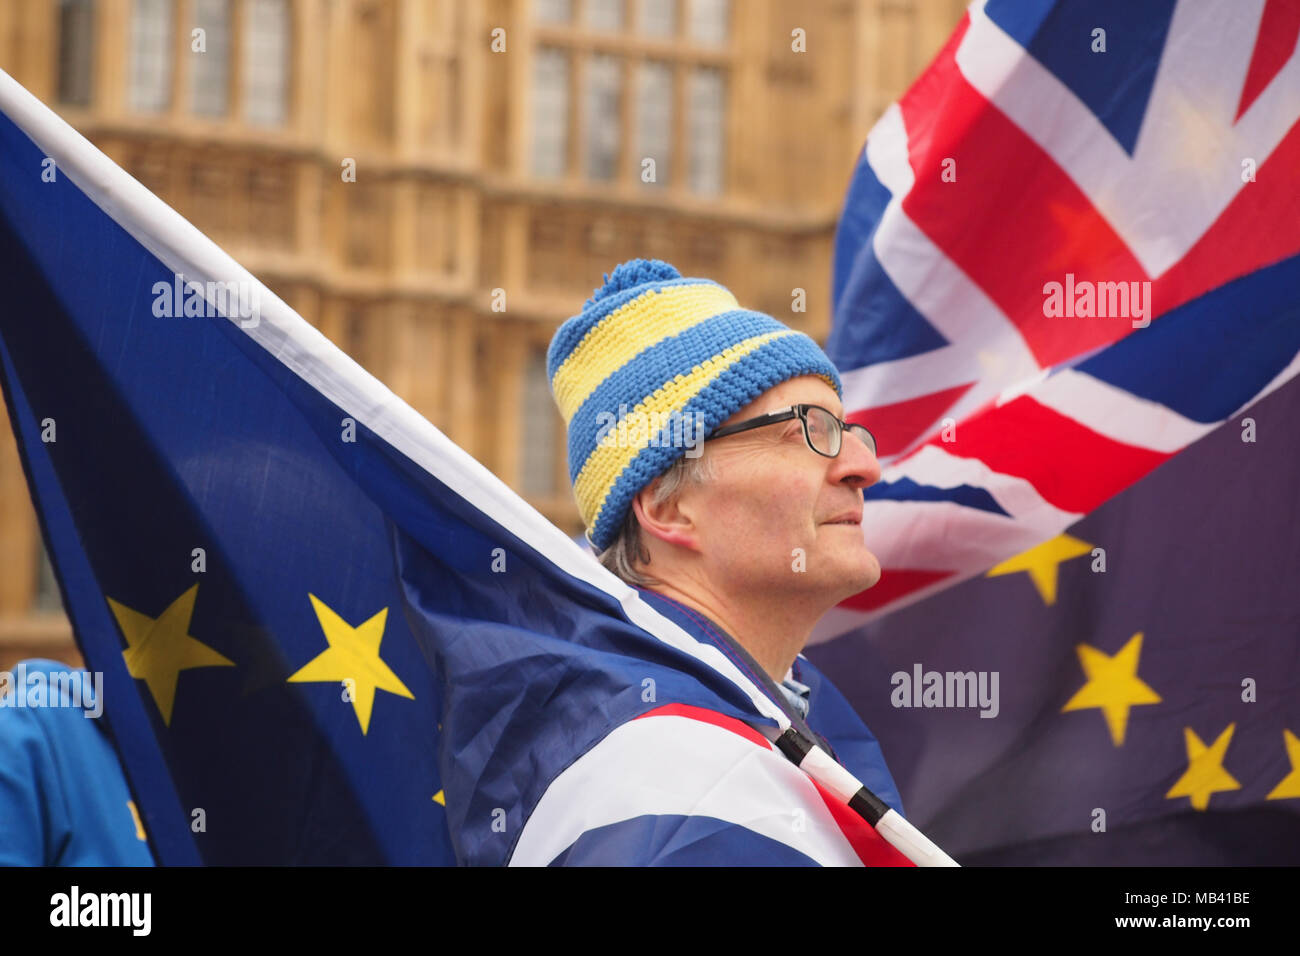 A man outside the Houses of Parliament, London protesting against Brexit with the European and Union flags - Stock Image